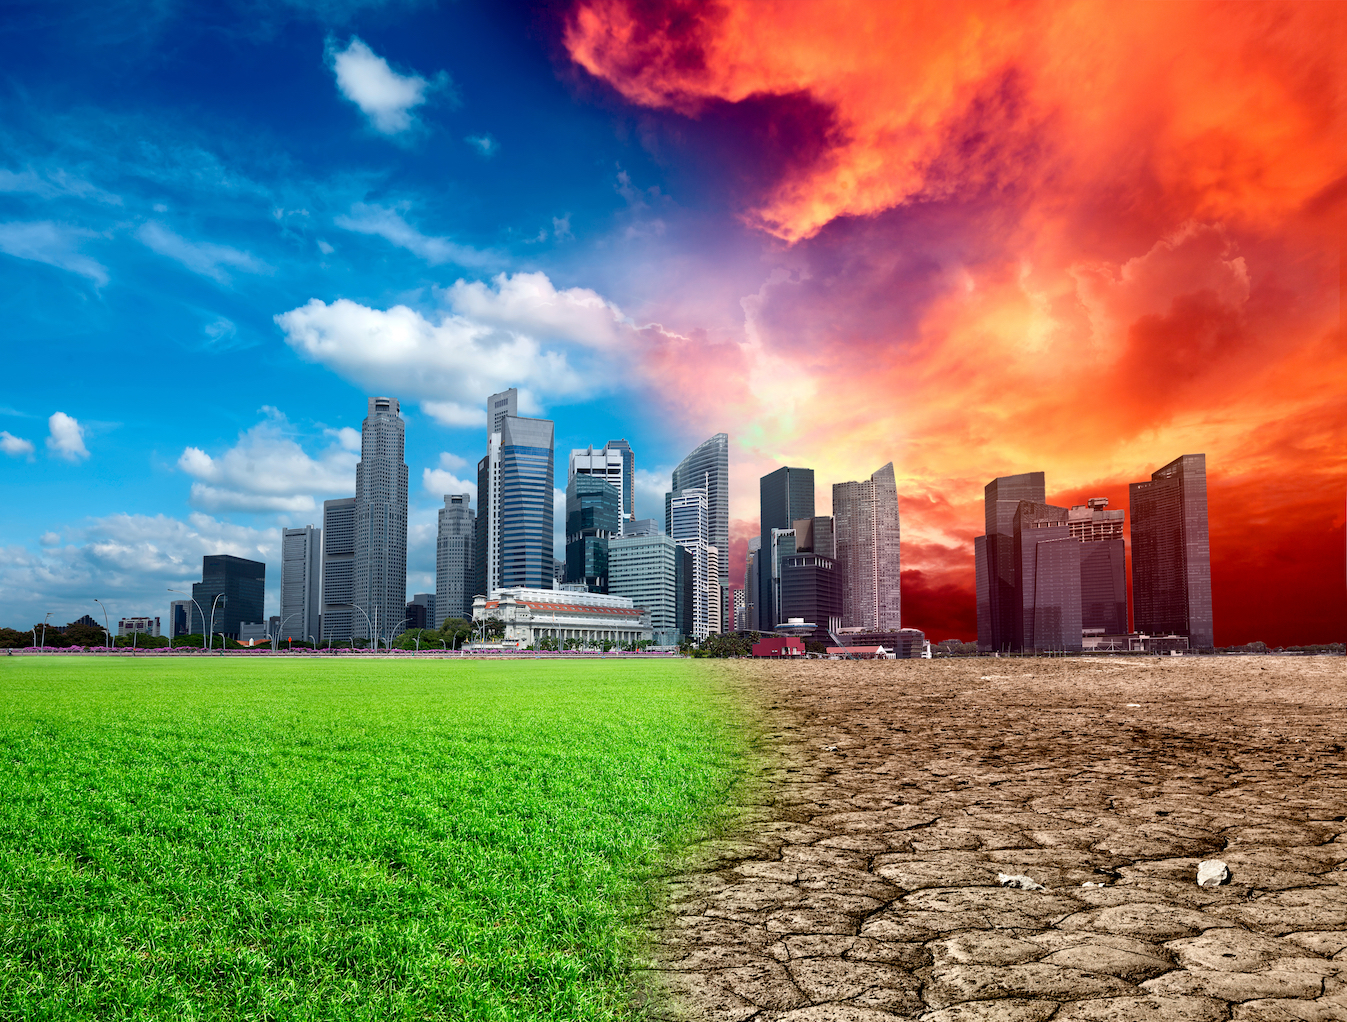 The Hothouse Earth climate will see increased global temperatures at an average of 4 to 5°C higher and a sea level 10 to 60 meters higher.